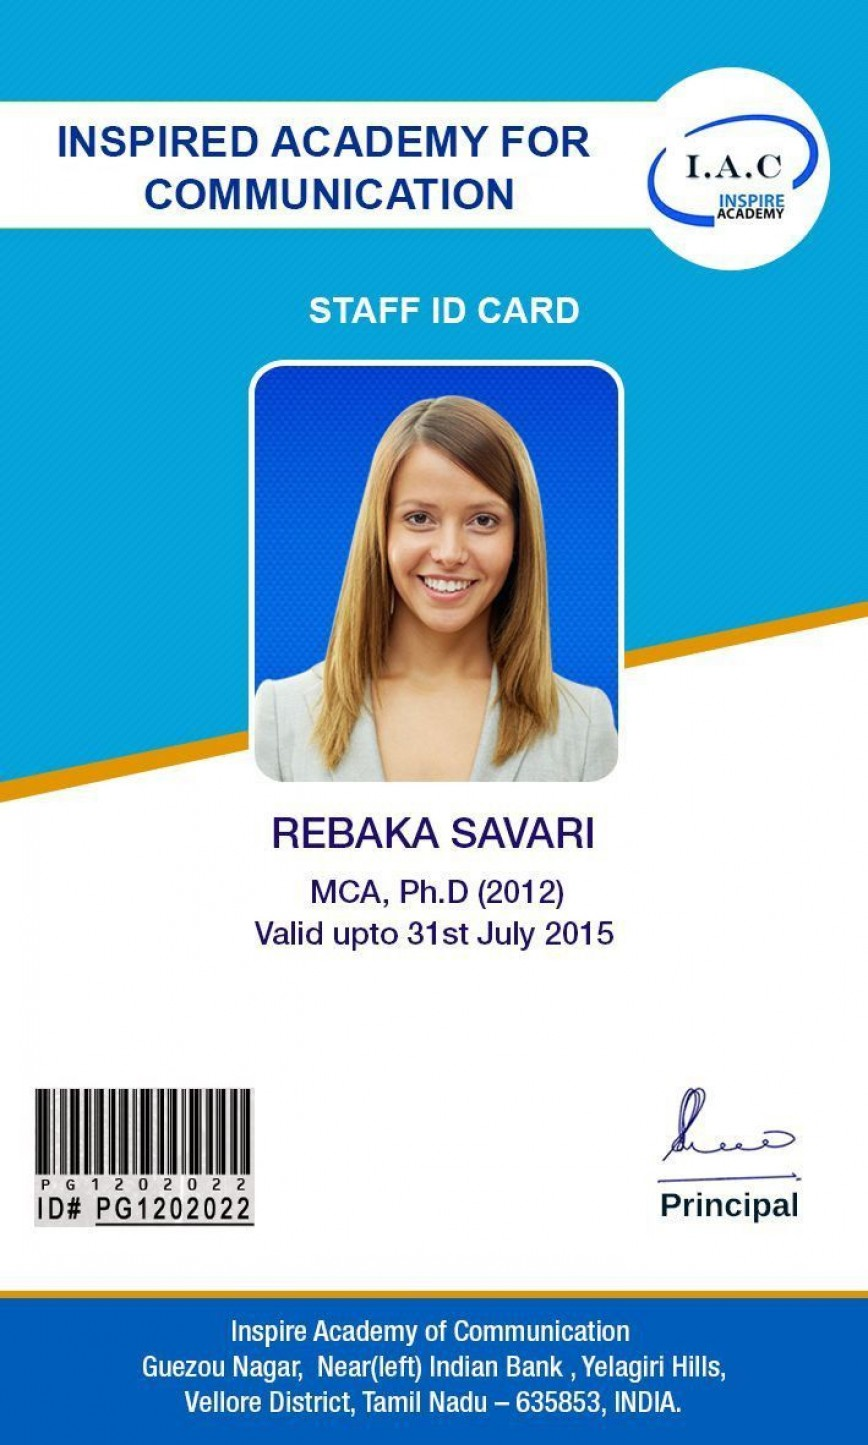 004 Archaicawful Student Id Card Template Picture  Design Free Download Word Employee Microsoft Vertical Identity Psd868